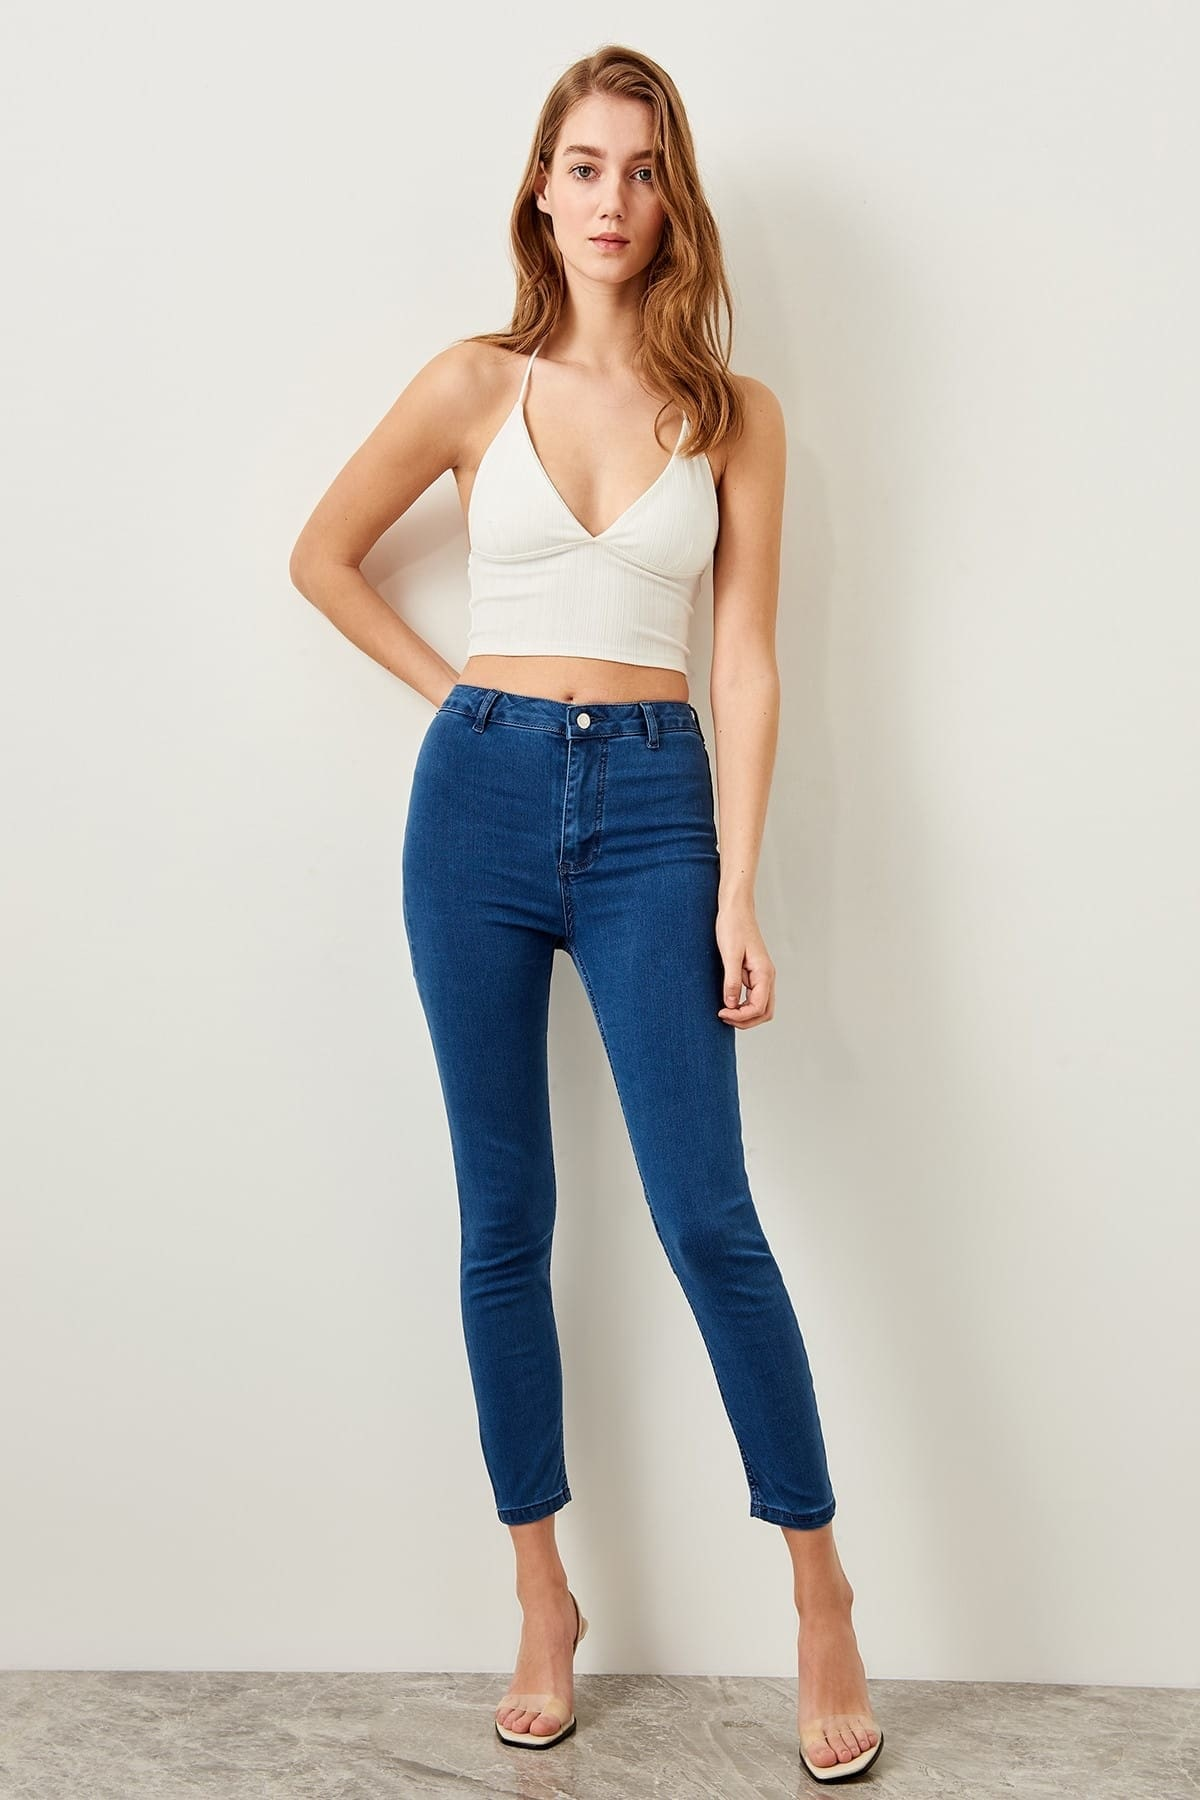 Trendyol Blue High Waist Jegging Jeans